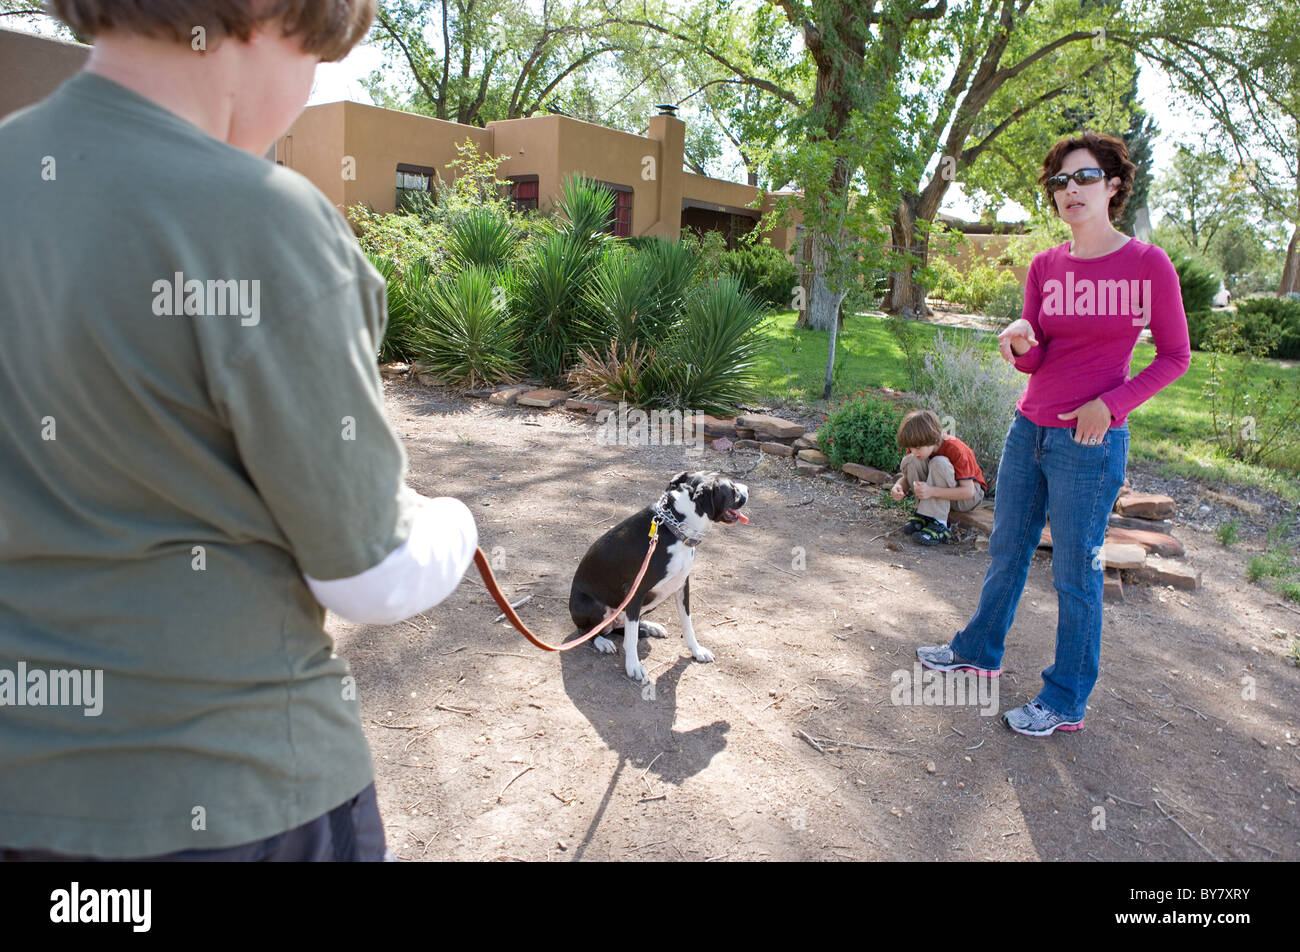 Dog trainer teaching twelve year old boy how to work with his dog on a leash. - Stock Image